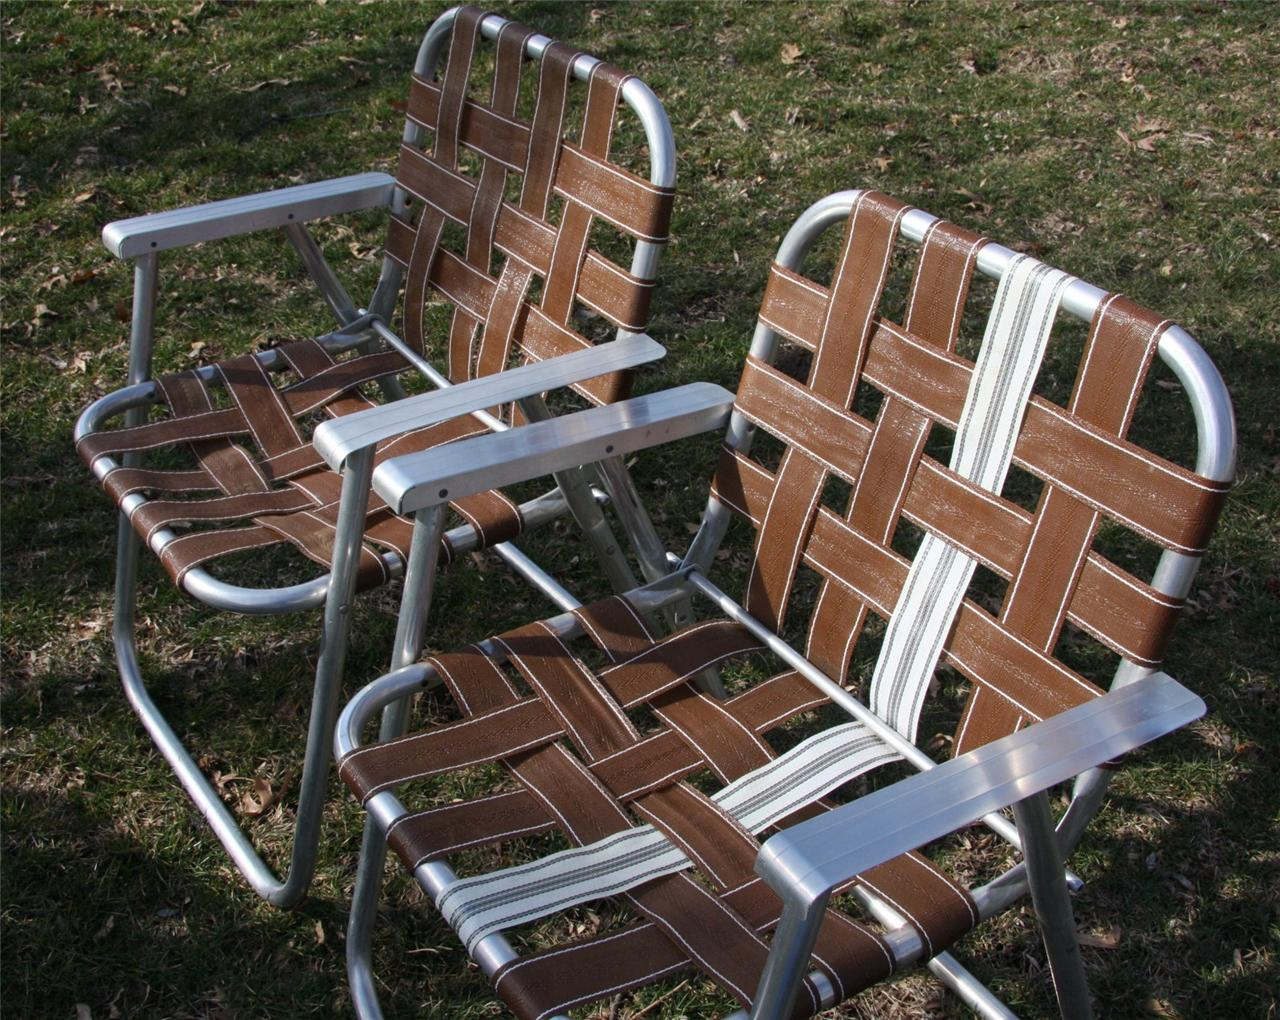 Retro Lawn Chairs 2 Retro Aluminum Retro Folding Lawn Chair Mid Century